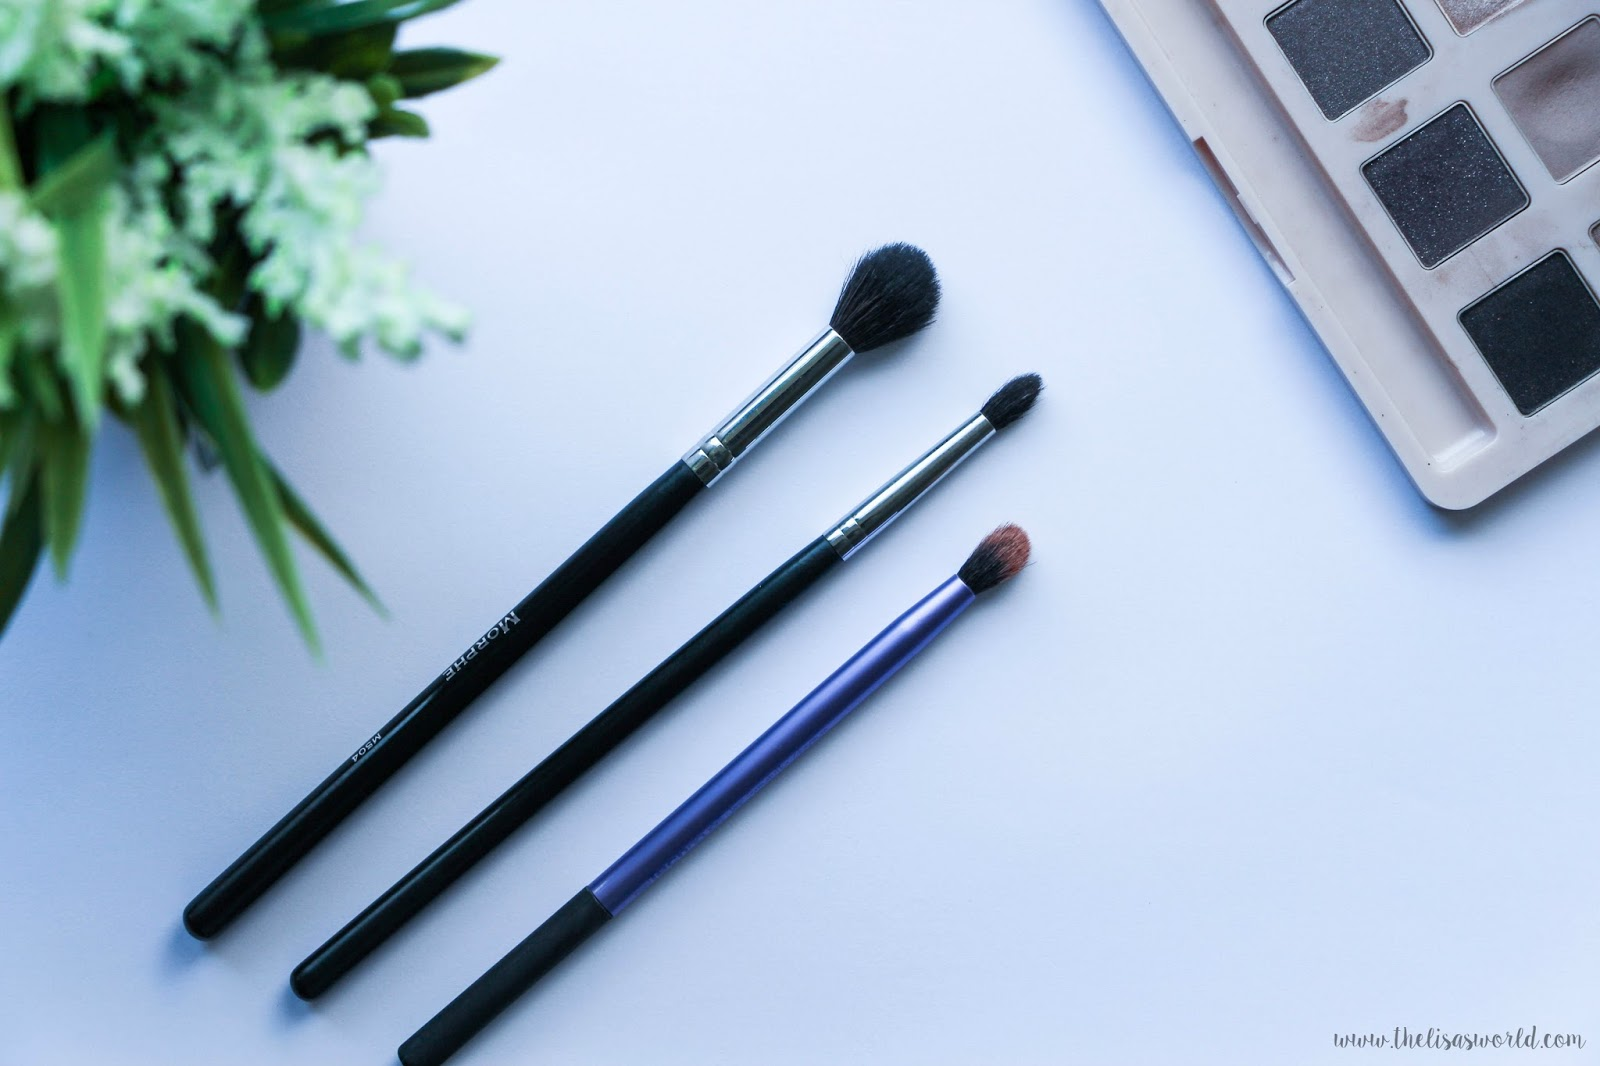 Top 3 Eye Brushes